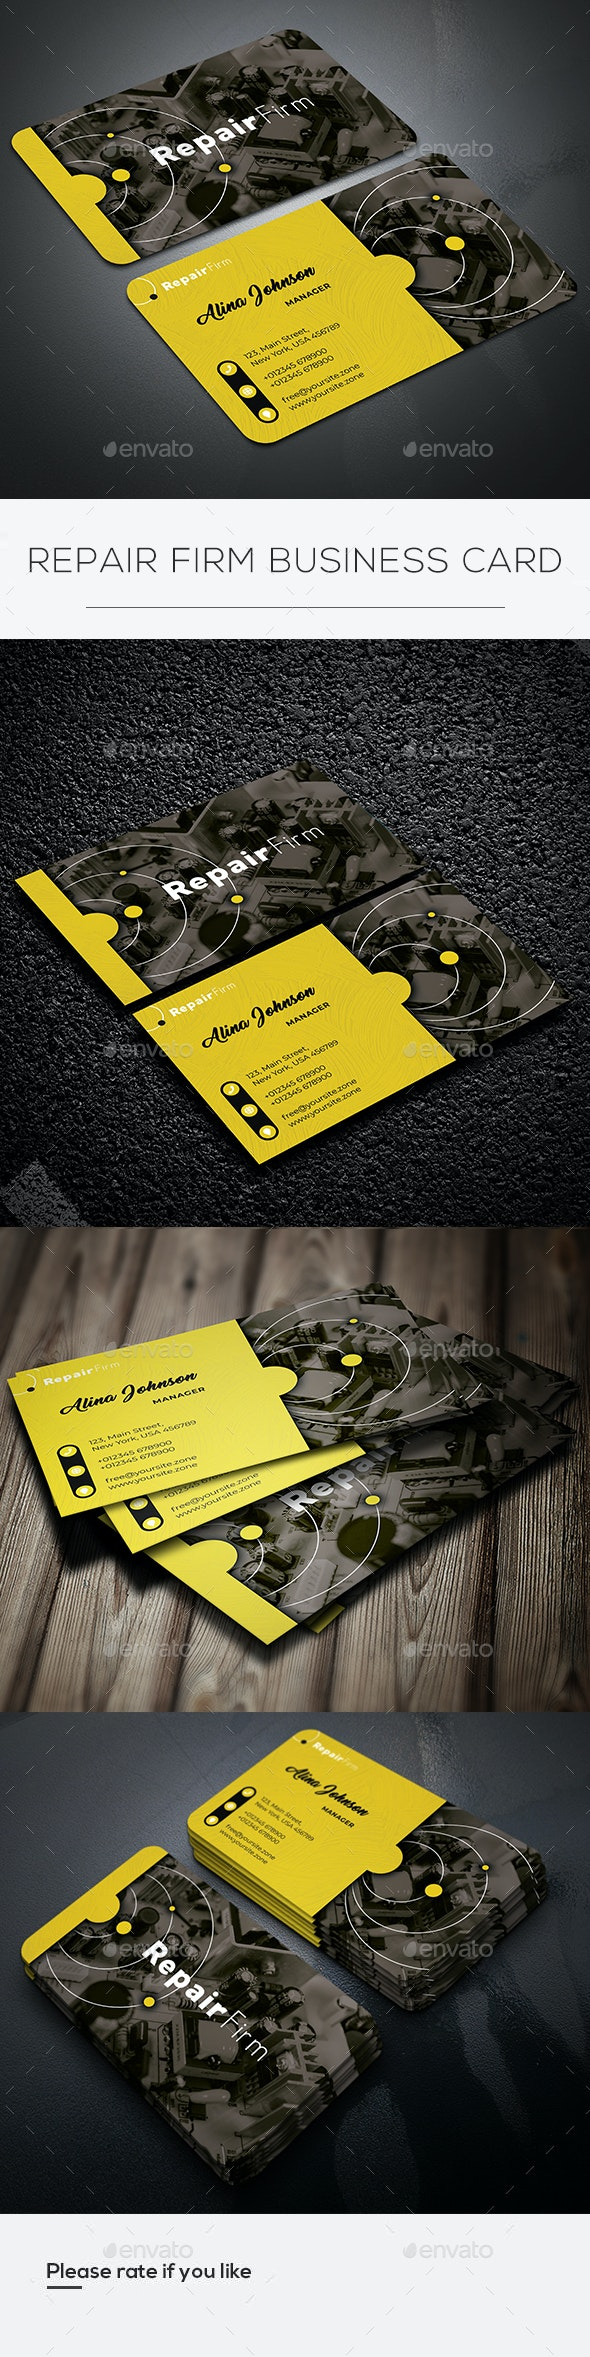 Repair Firm Business Card - Business Cards Print Templates